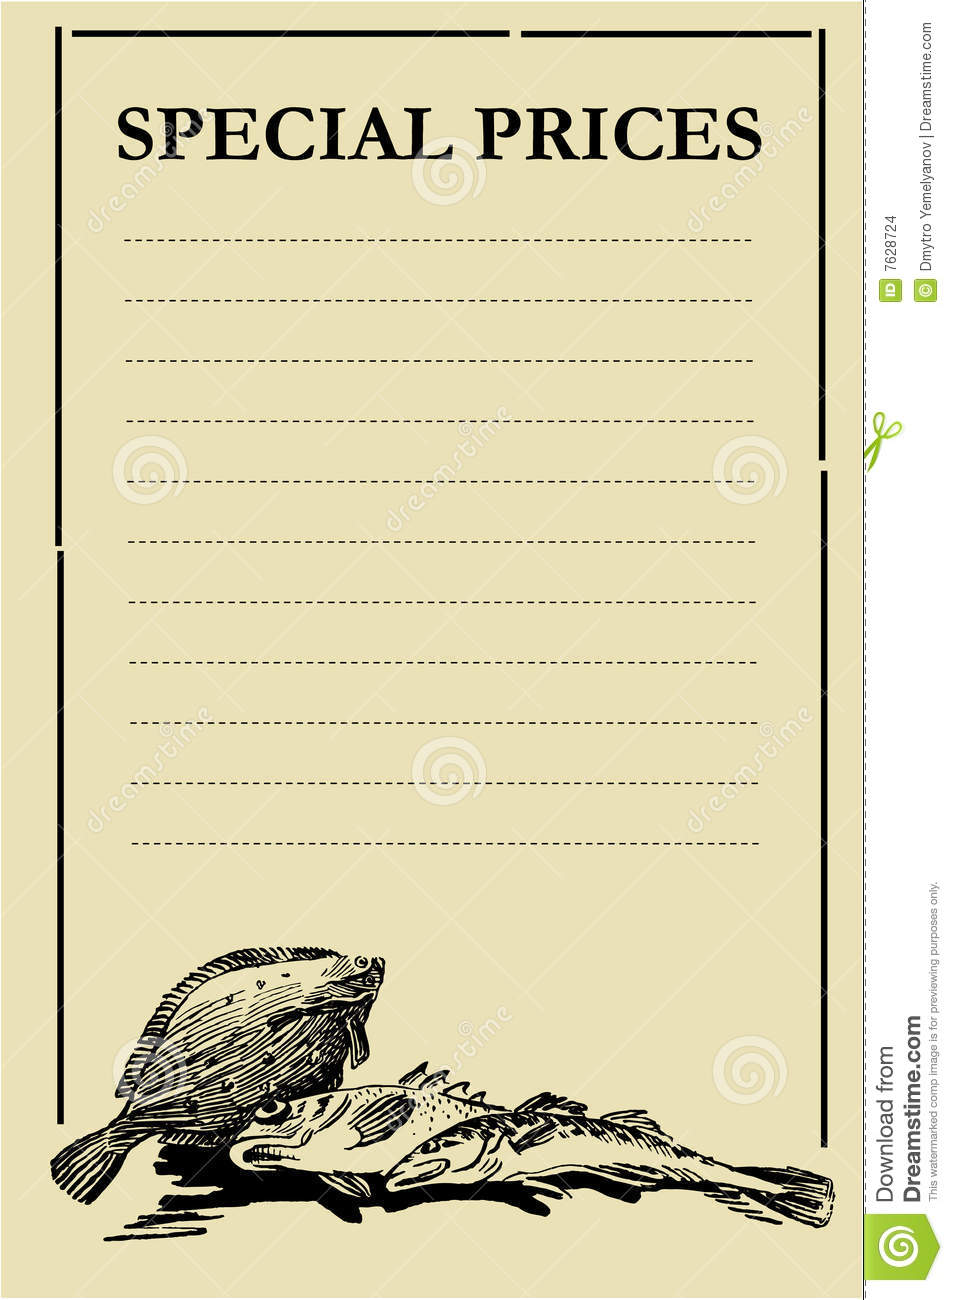 Fish priceboard stock images image 7628724 for Fish stocking prices